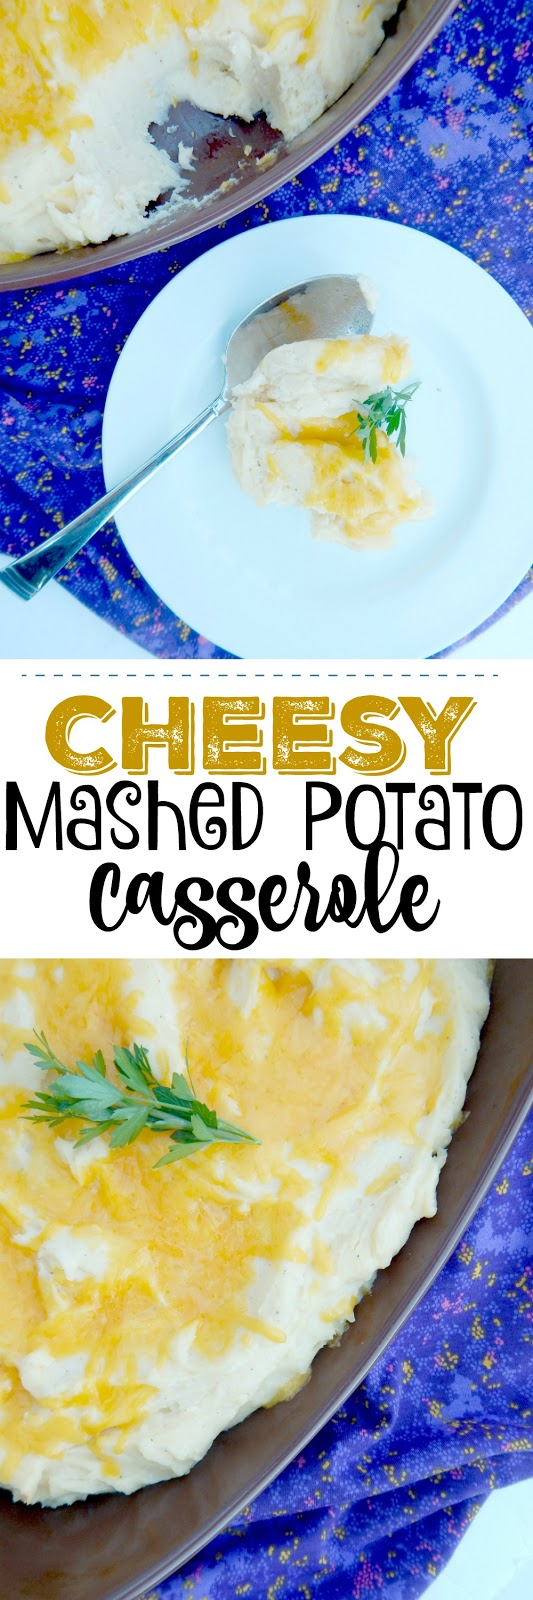 Cheesy Mashed Potato Casserole...an ideal Thanksgiving side dish!  Cheesy and rich this dish can be prepped up to 3 days ahead for that busy holiday.  A family favorite! (sweetandsavoryfood.com)